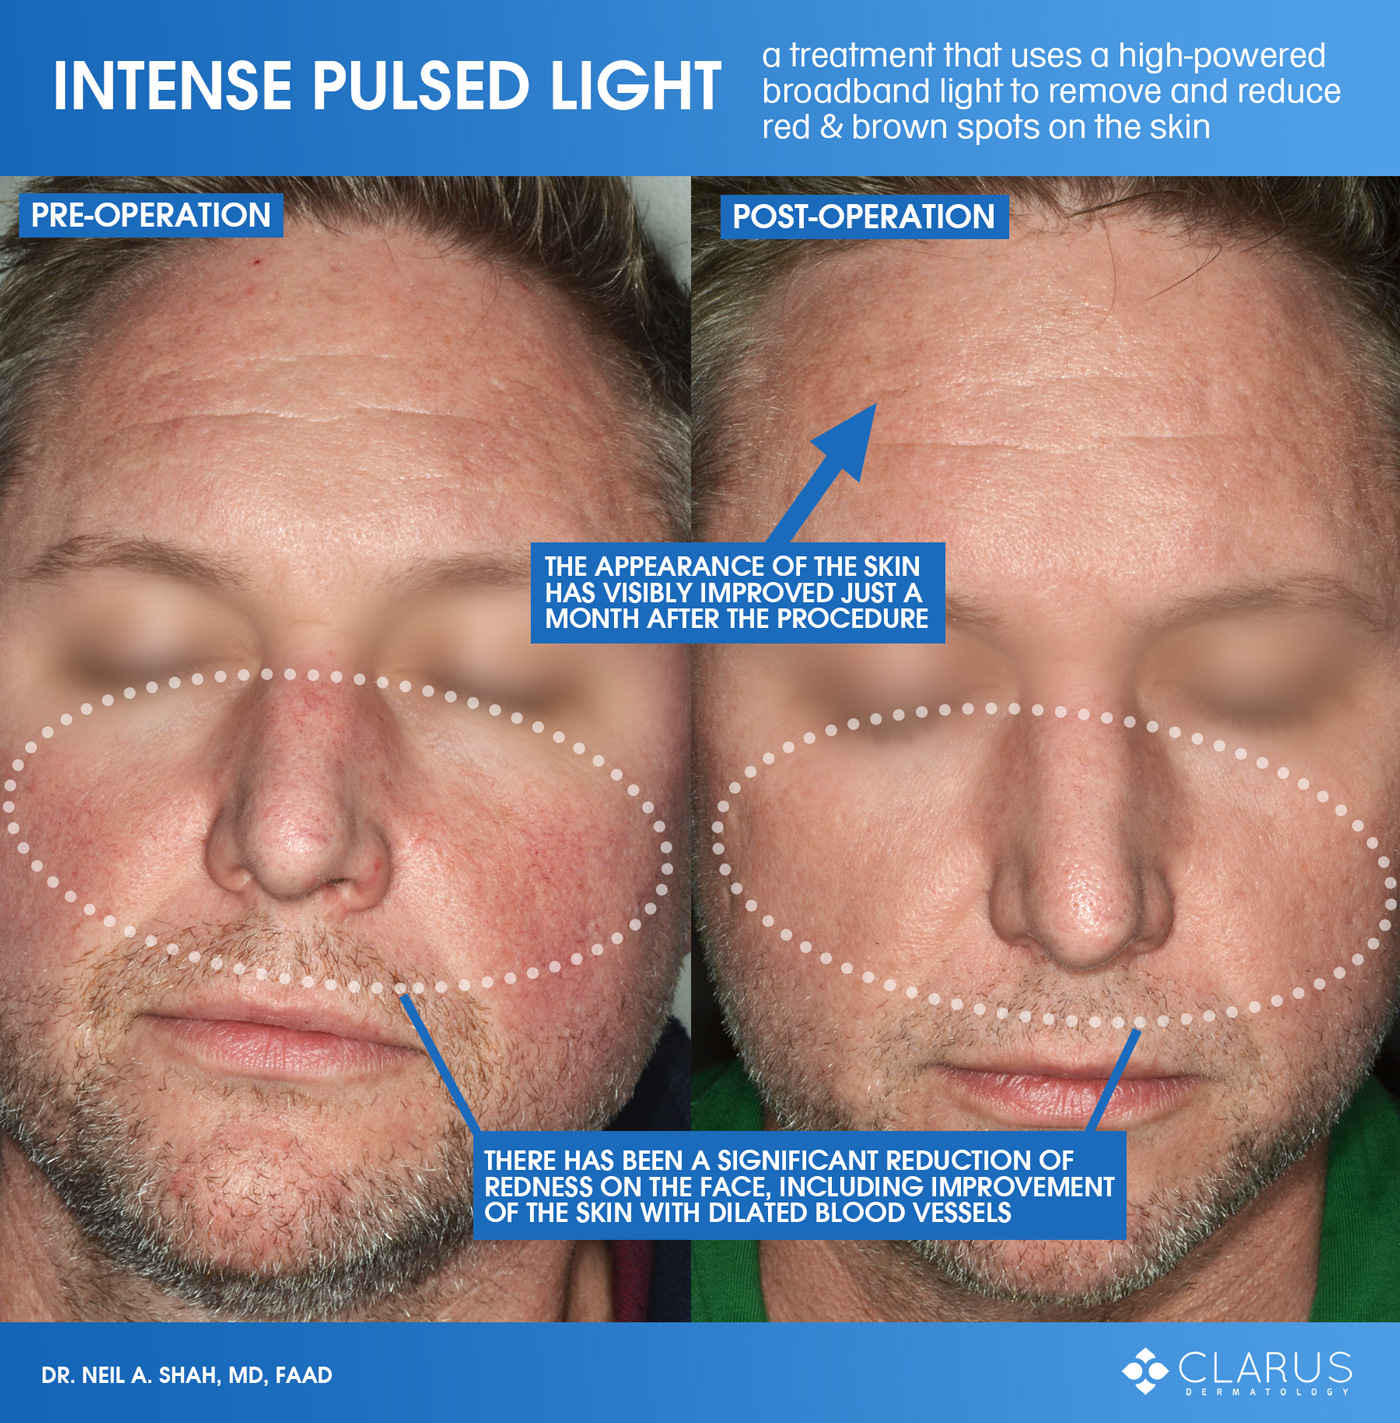 If IPL treatment sounds familiar, it might be because you've seen images that we've posted before to demonstrate how IPL reduced red and brown spots on our patient's skin.